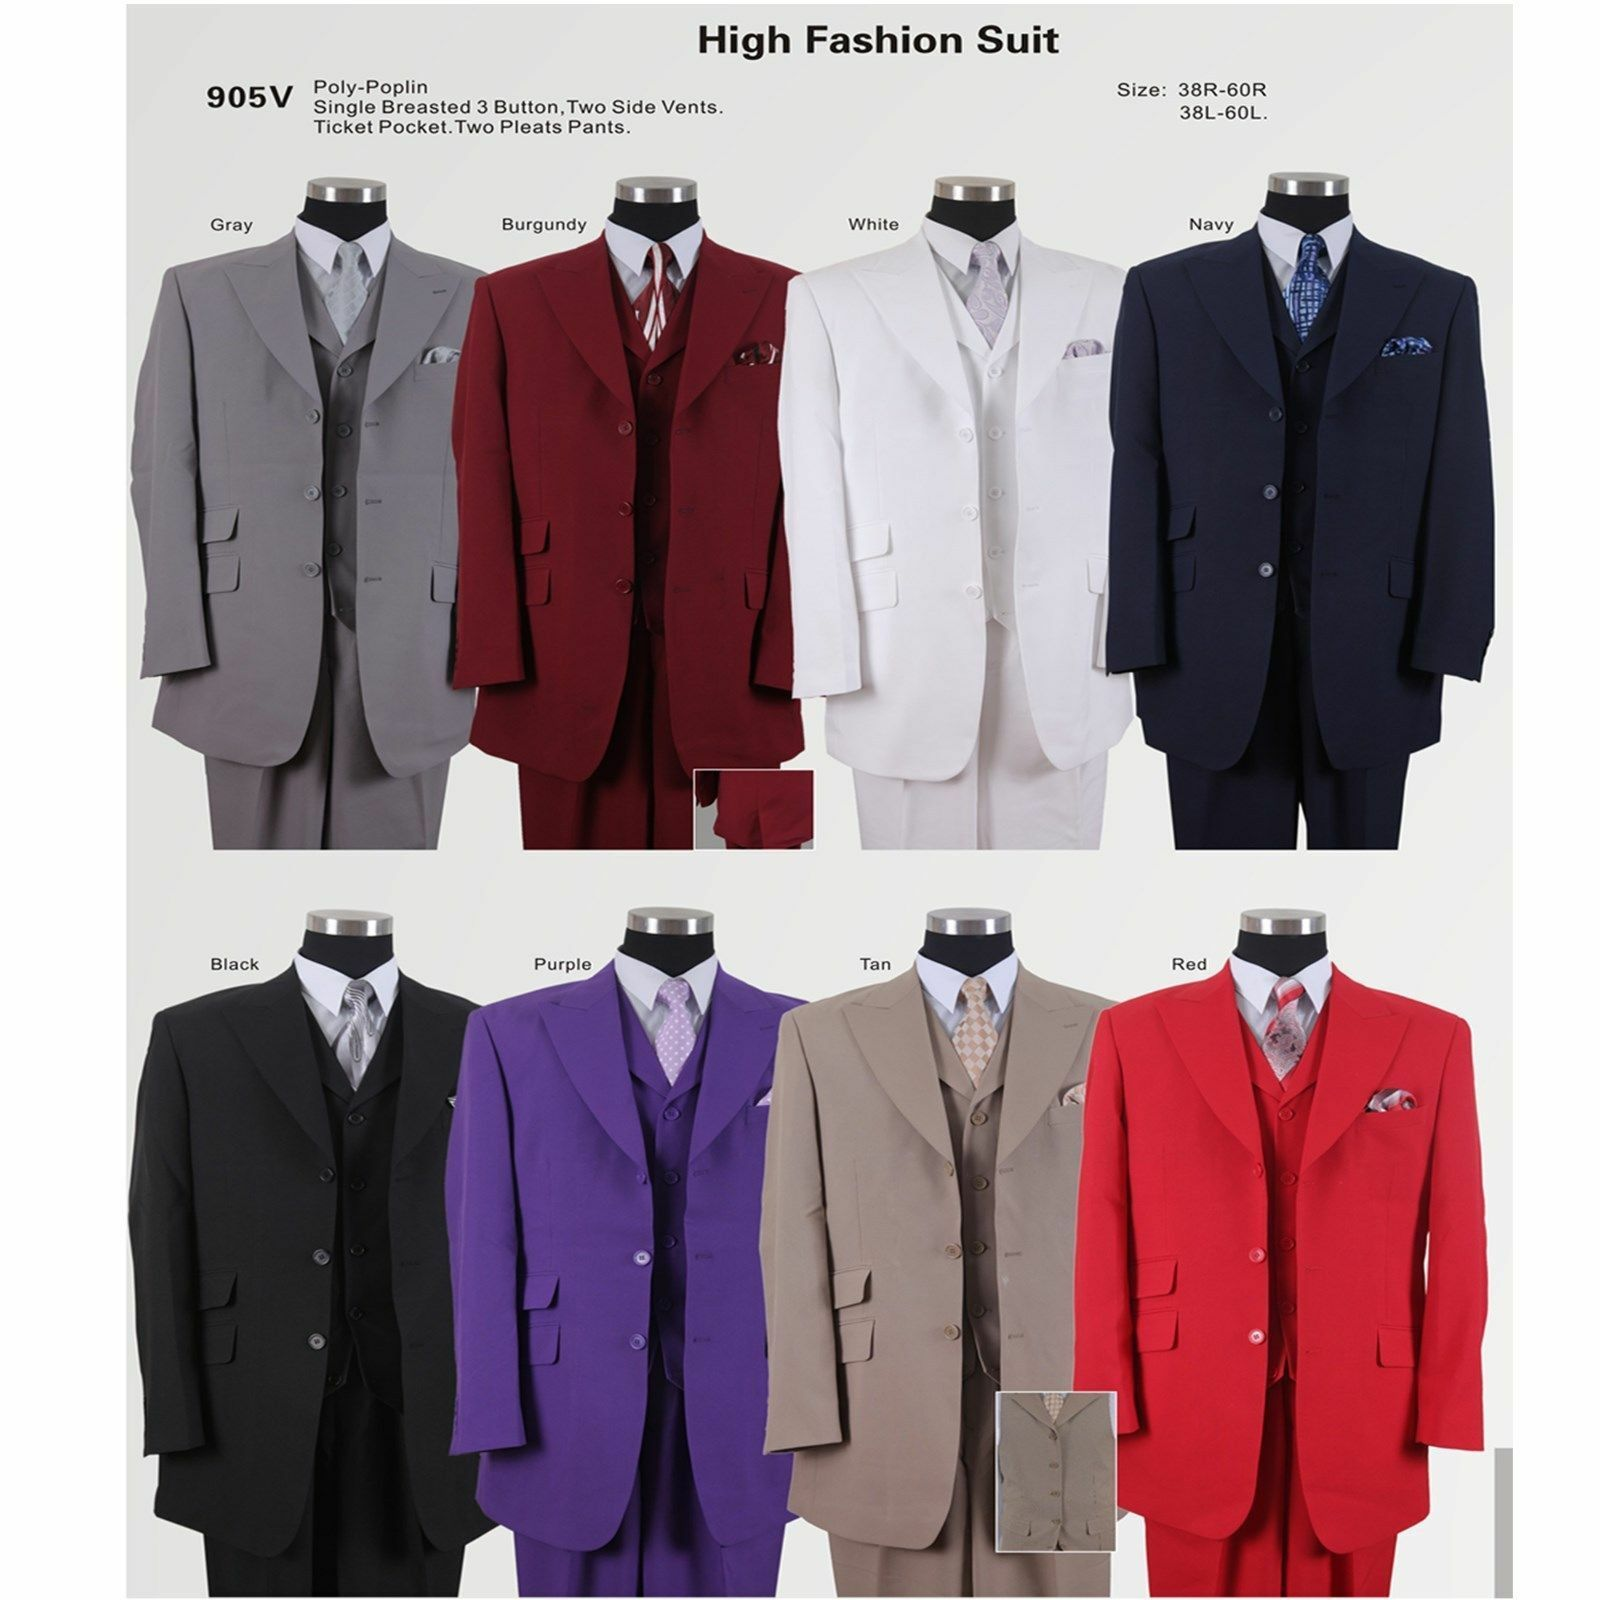 New Men's 3 Button Fashion Suit with Collared Vest,w Pleated Pants 8 colors 905V